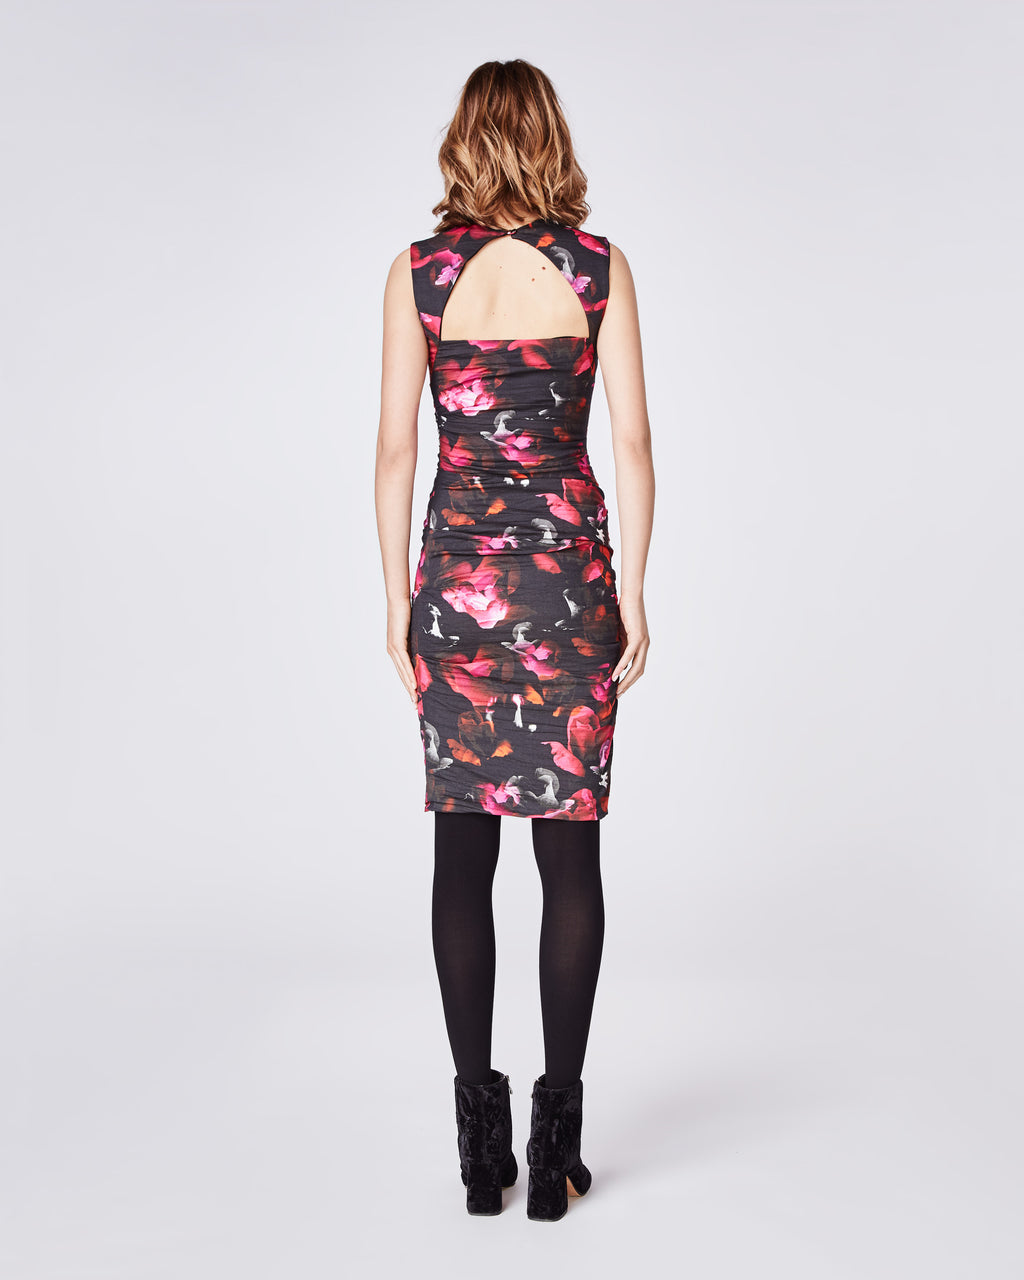 CC10185 - FRAGMENT FLORAL FELICITY DRESS - dresses - short - The felcity ruched side dress is a favorite and flatters all body types. The floral print is perfect for your holiday parties.